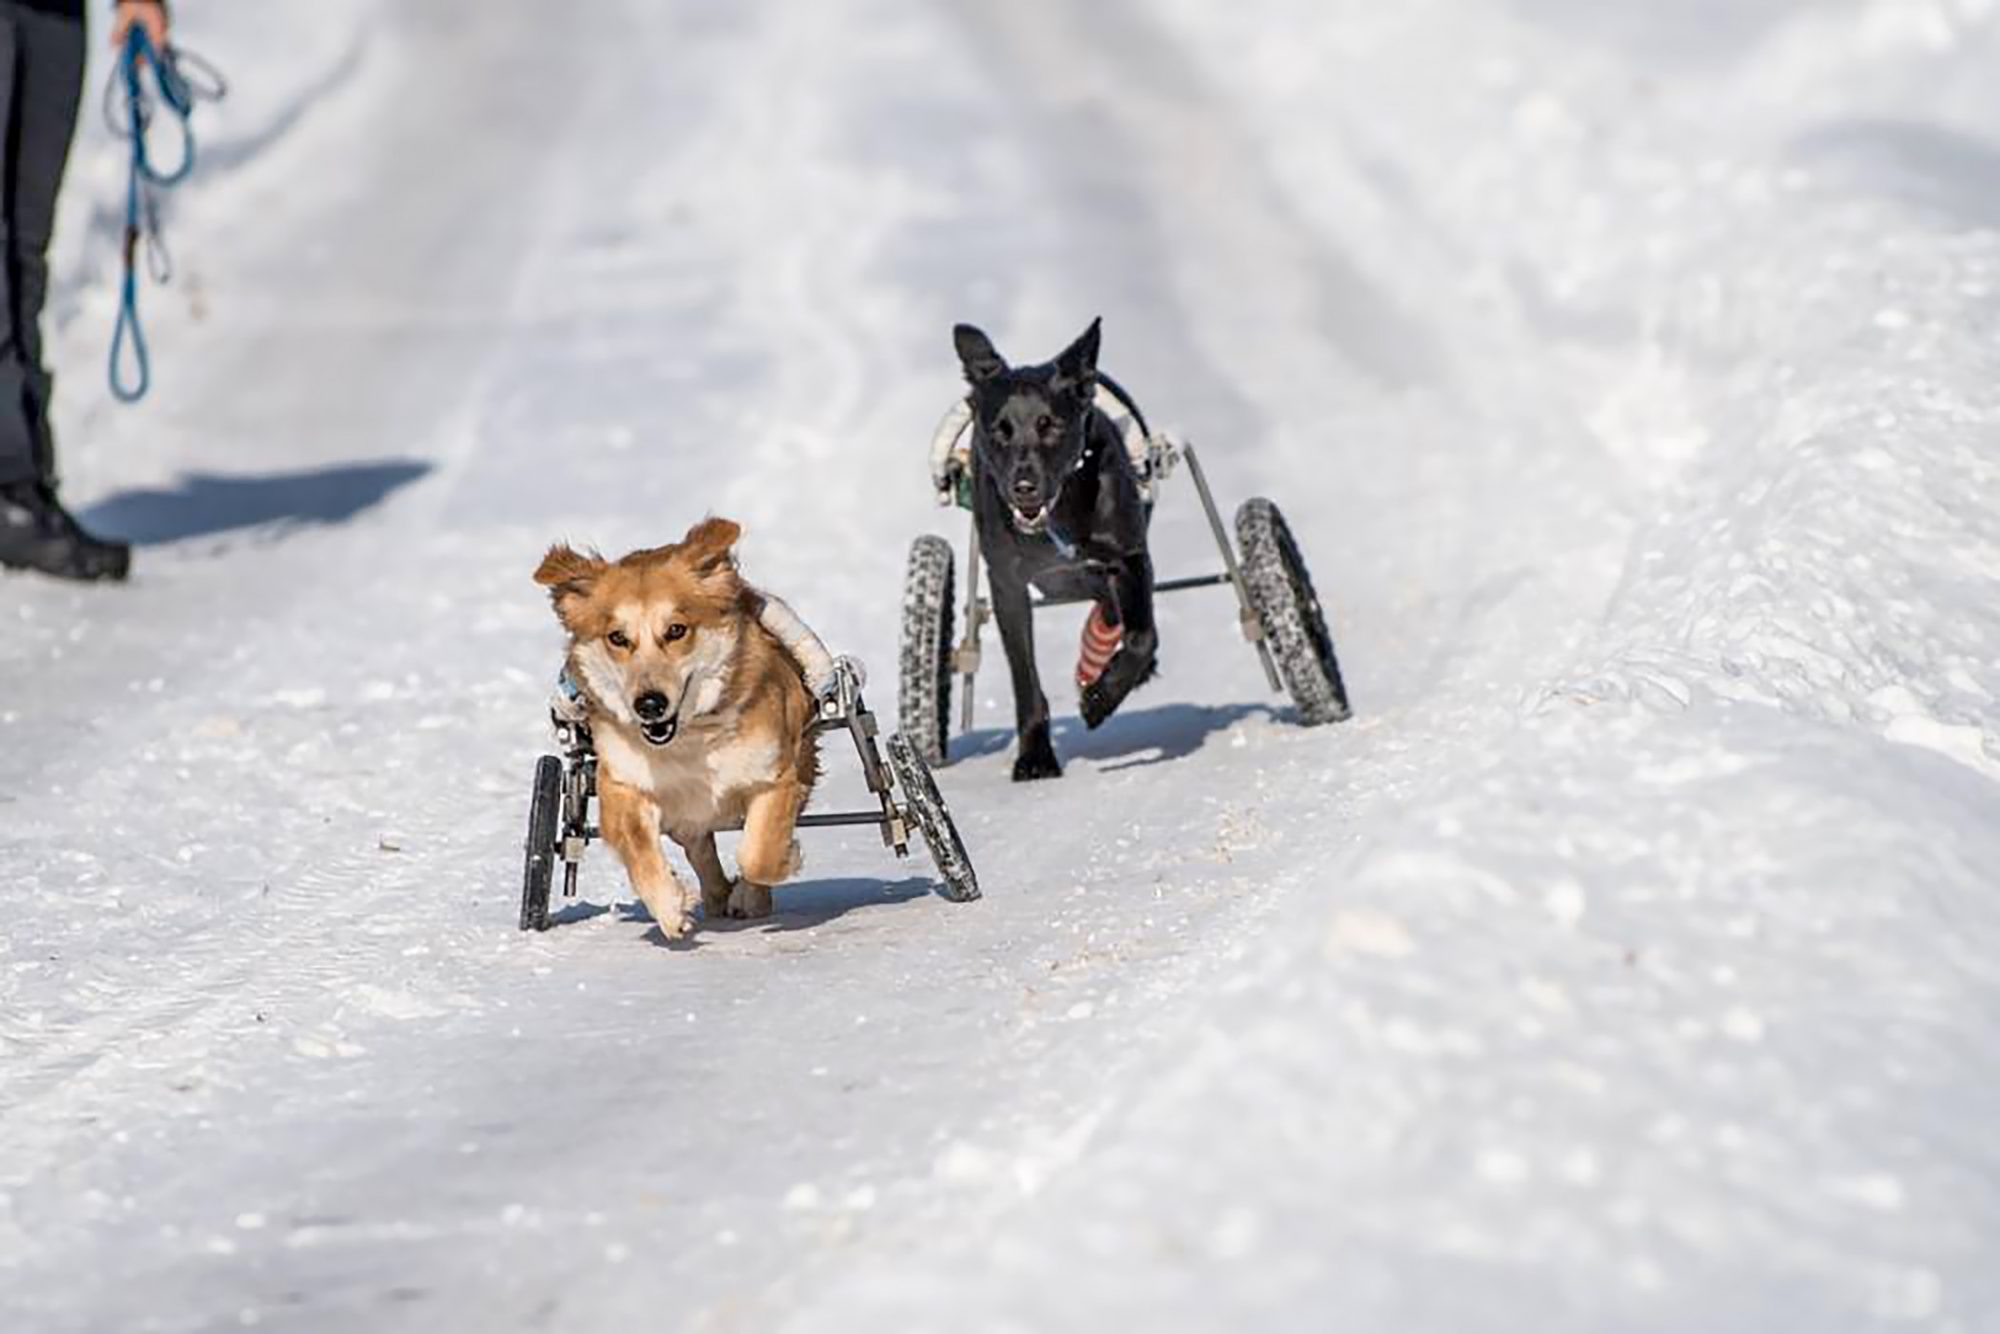 paraplegic dogs from Minnesota shelter racing in the snow with their wheels